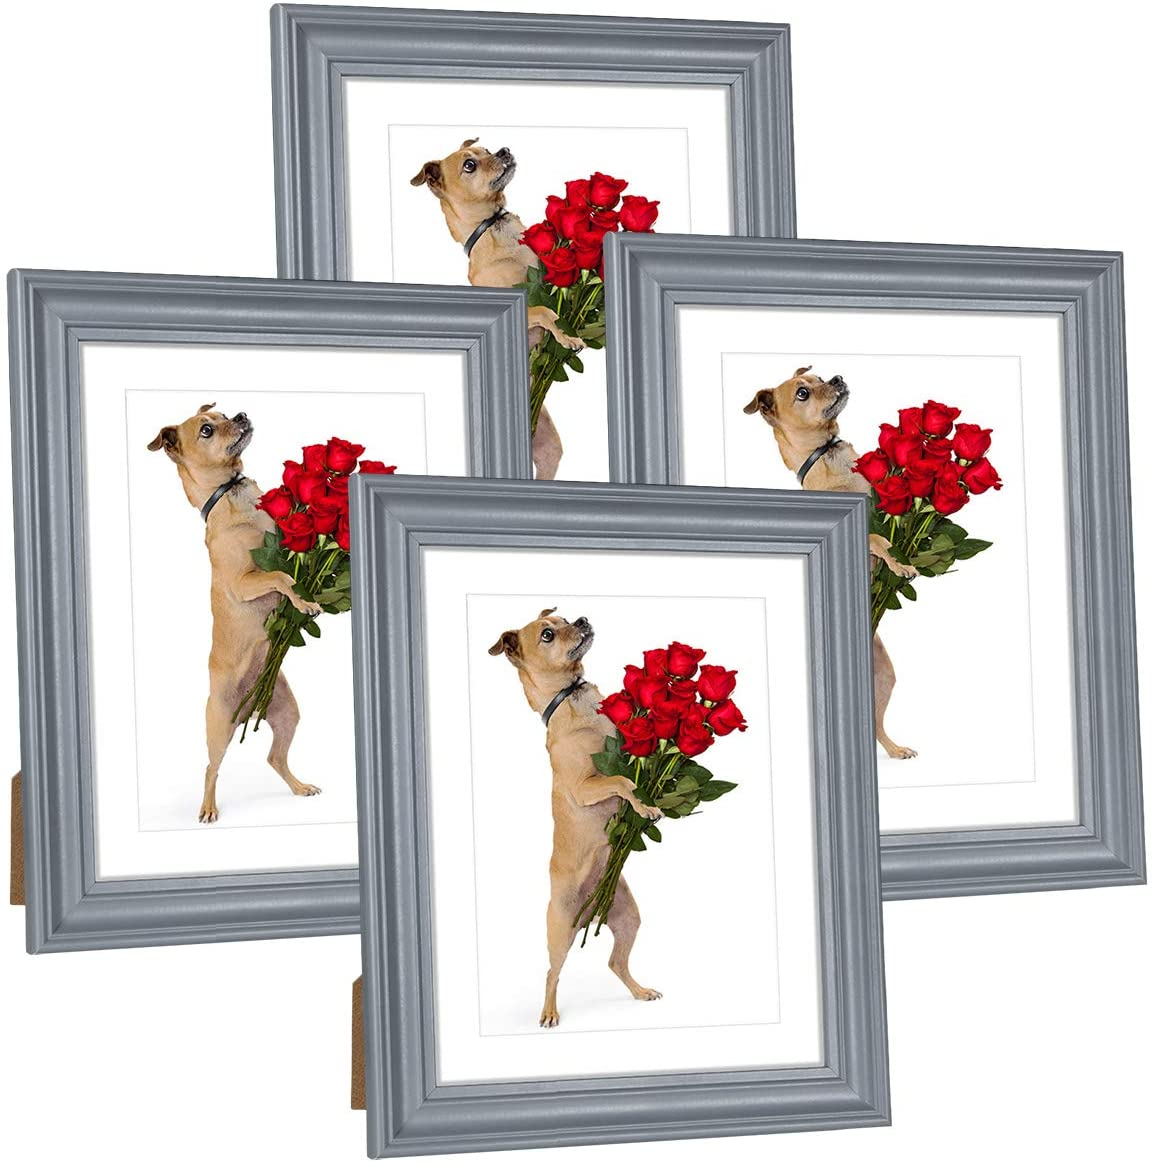 Hap Tim 8x10 Picture Frame White Wooden Photo Frames for Tabletop Display and Wall Decoration, Set of 4 (CWH-8x10-BG)